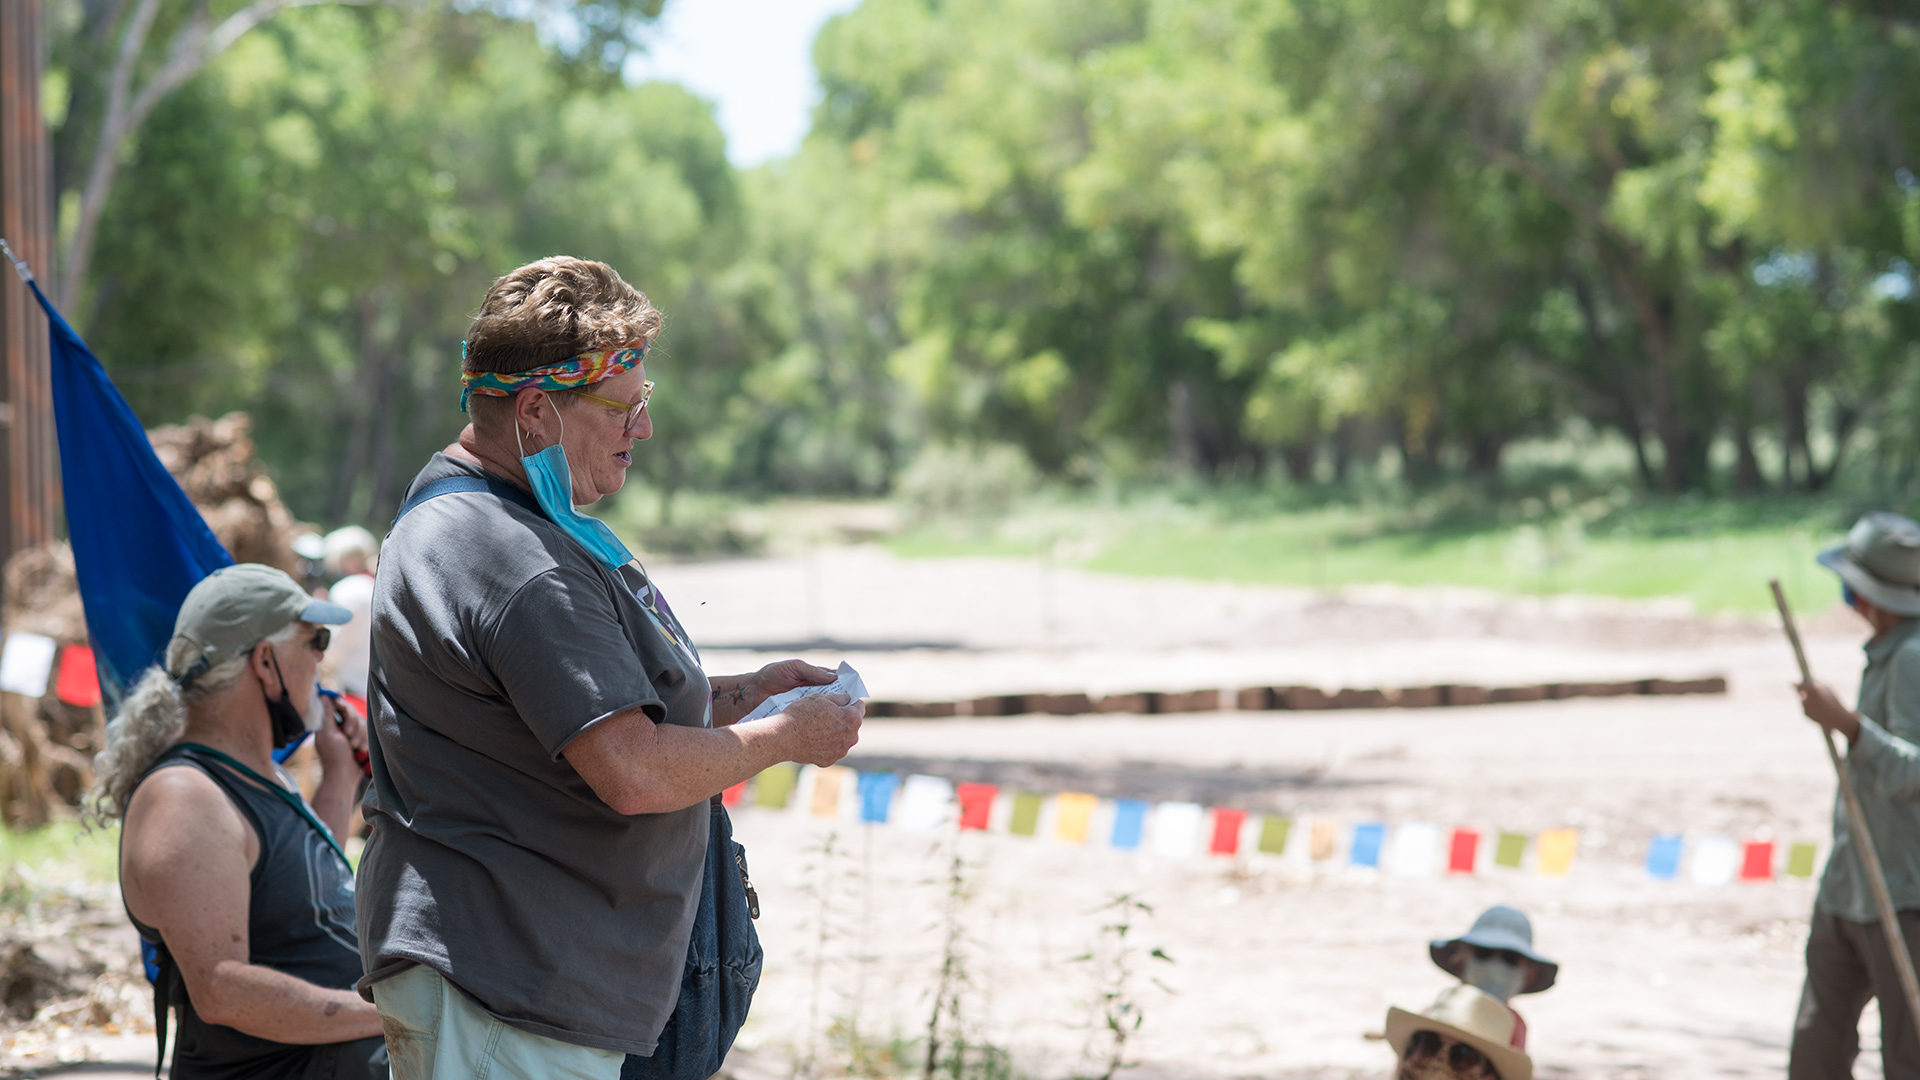 Kim Beach-Moschetti, an area resident and Arizona House of Representatives candidate, speaks at a border wall protest at the San Pedro River on Aug. 14, 2020.